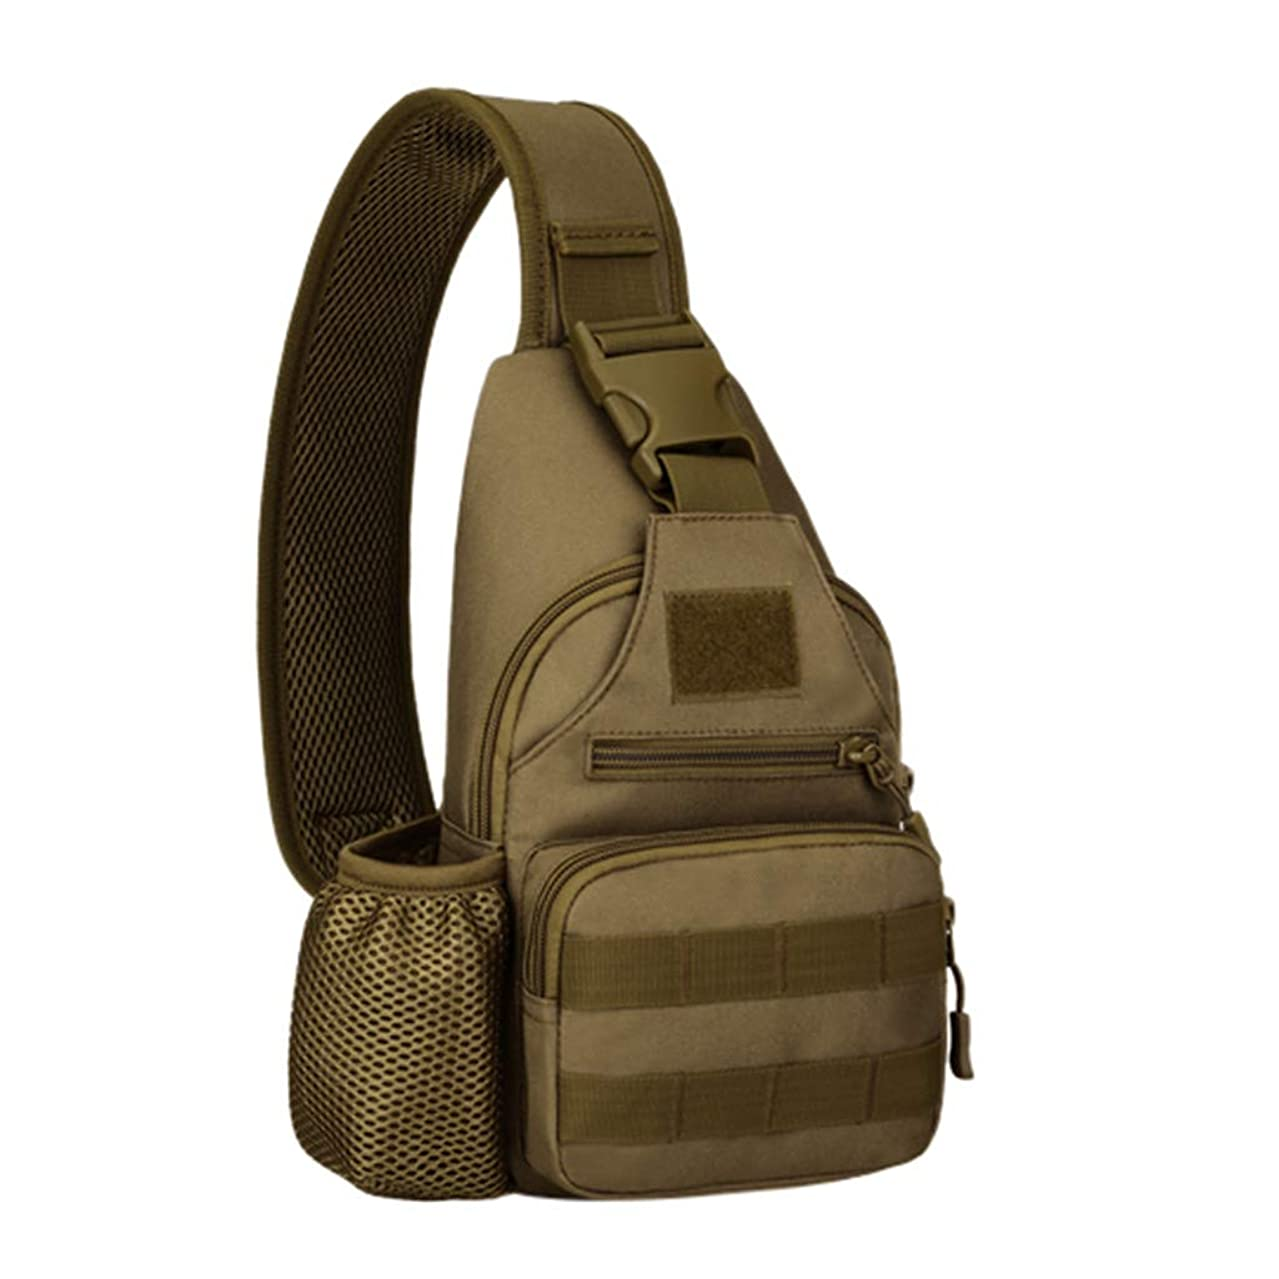 Tactical Shoulder Chest Bags, Inkach Military Sling Pack Backpack for Hiking Cycling Climbing Camping Trekking Travelling Messenger Cross-Body Bag (B)